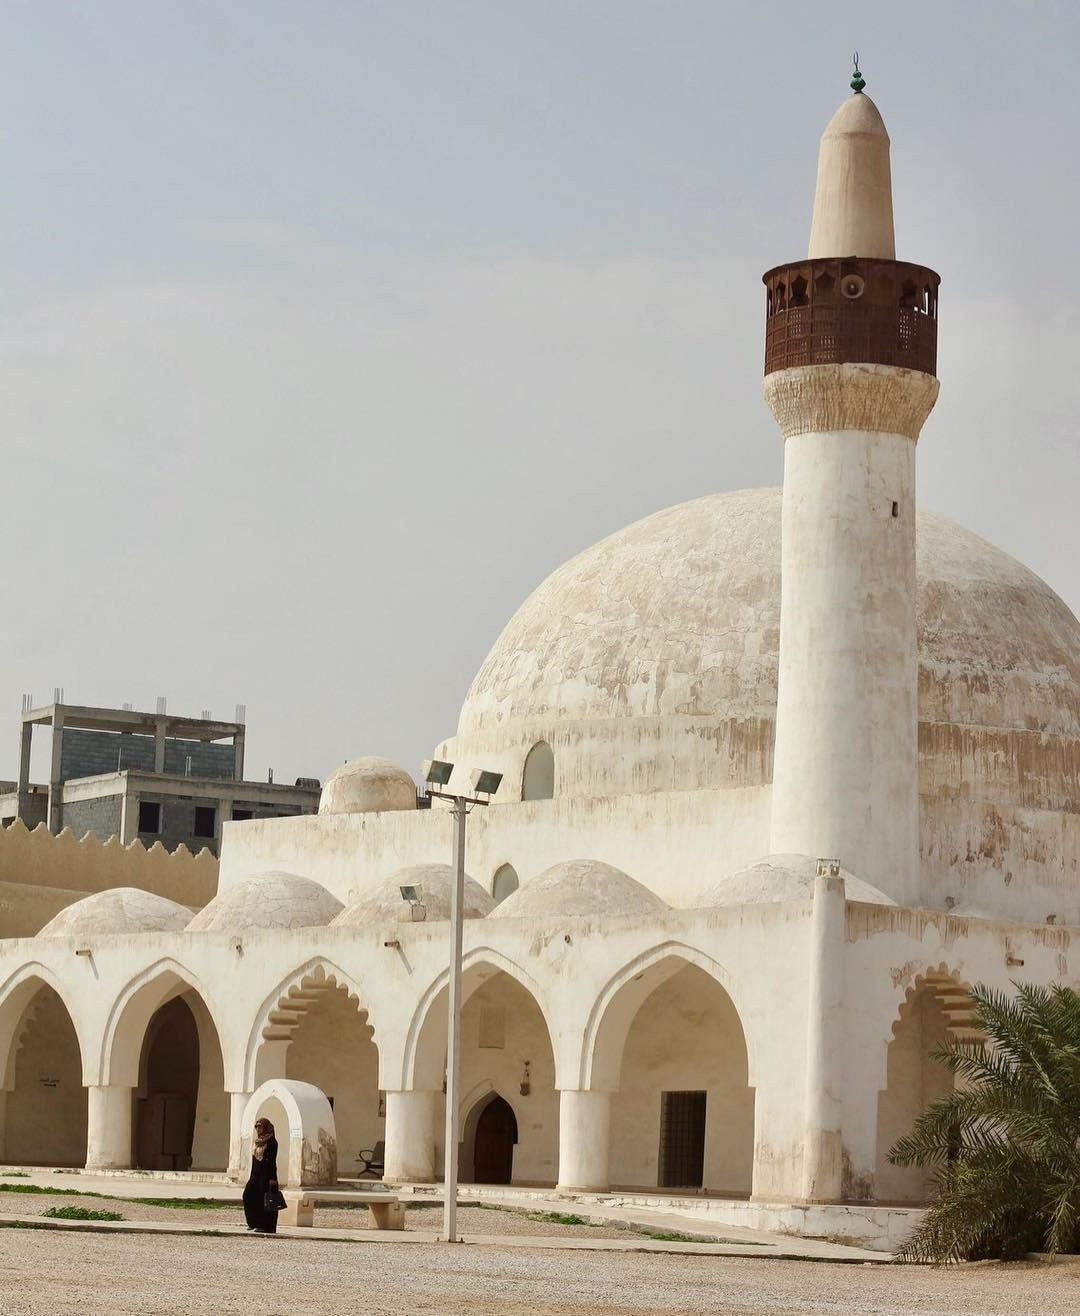 This Six Hundred Year Old Mosque In The Heart Of Al Hasa Offers The Chance To Experience A Slice Of Traditional Arabia R Mosque Hundred Years Old In The Heart